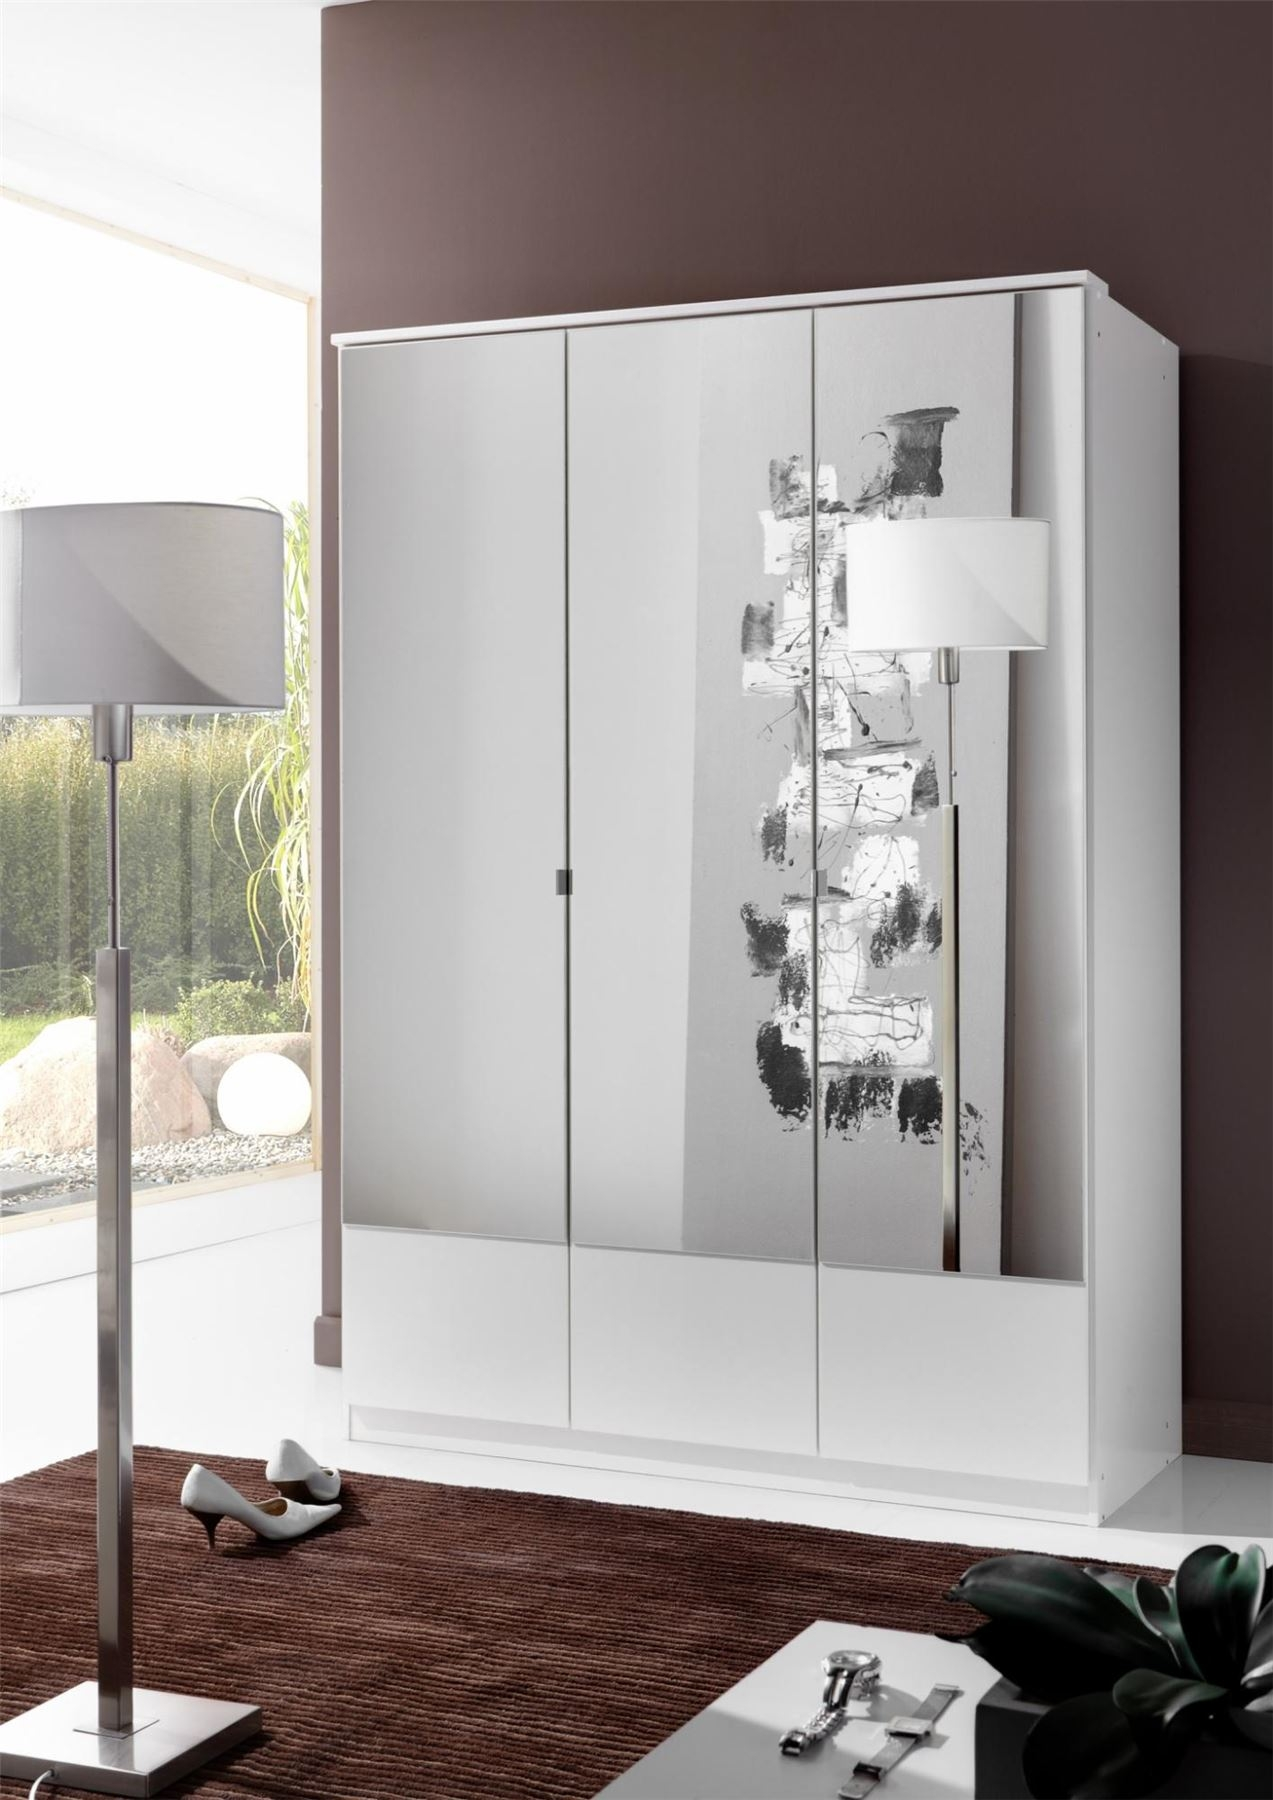 German Wimex Imago White 3 Door 135cm Wardrobe With Mirrors With Regard To 3 Door White Wardrobes (Image 8 of 25)